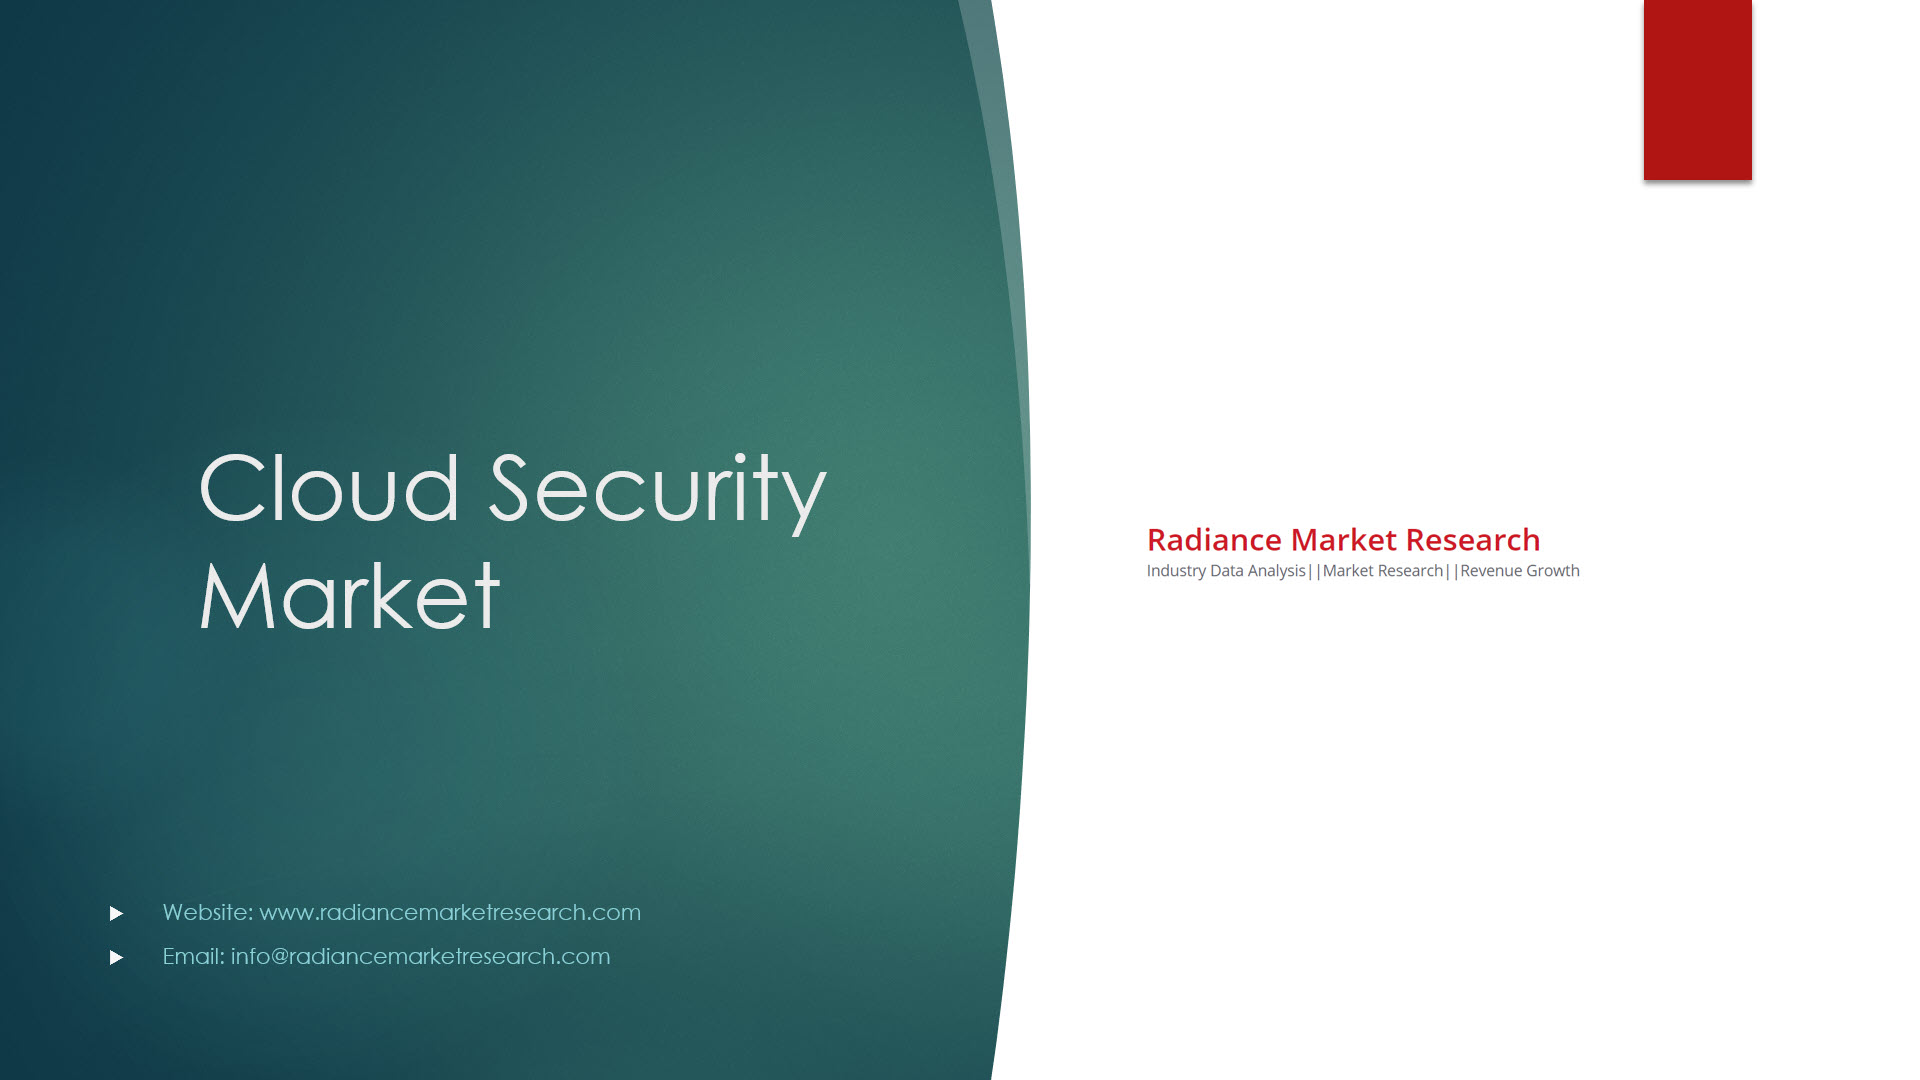 Cloud Security Market